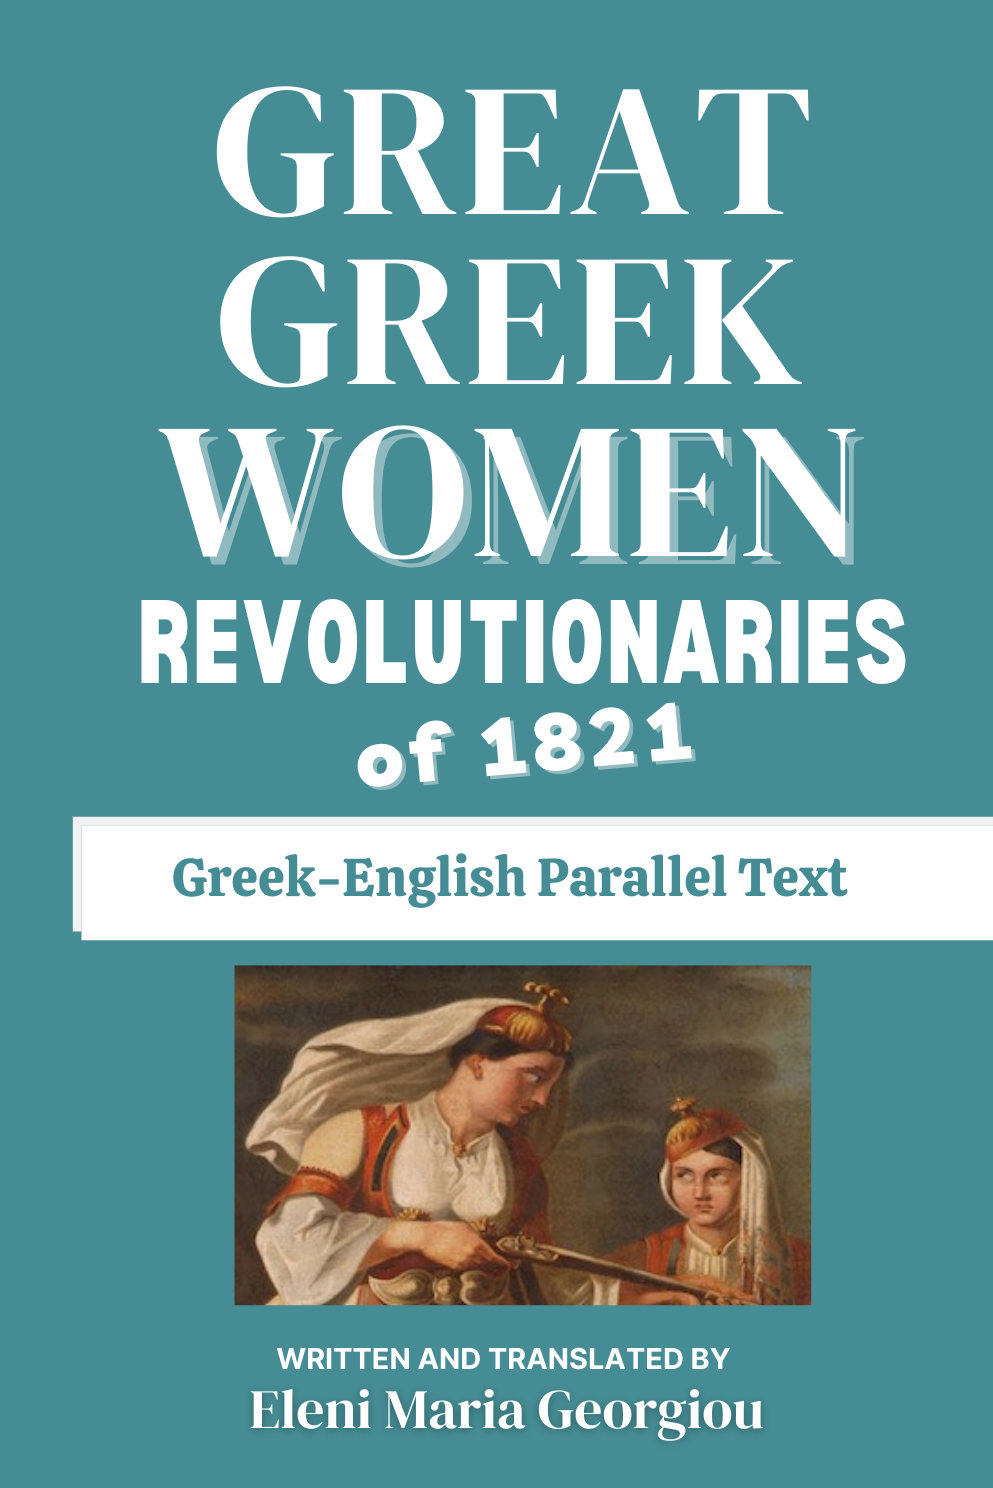 Great Greek Women Revolutionaries of 1821: Greek-English Parallel Text